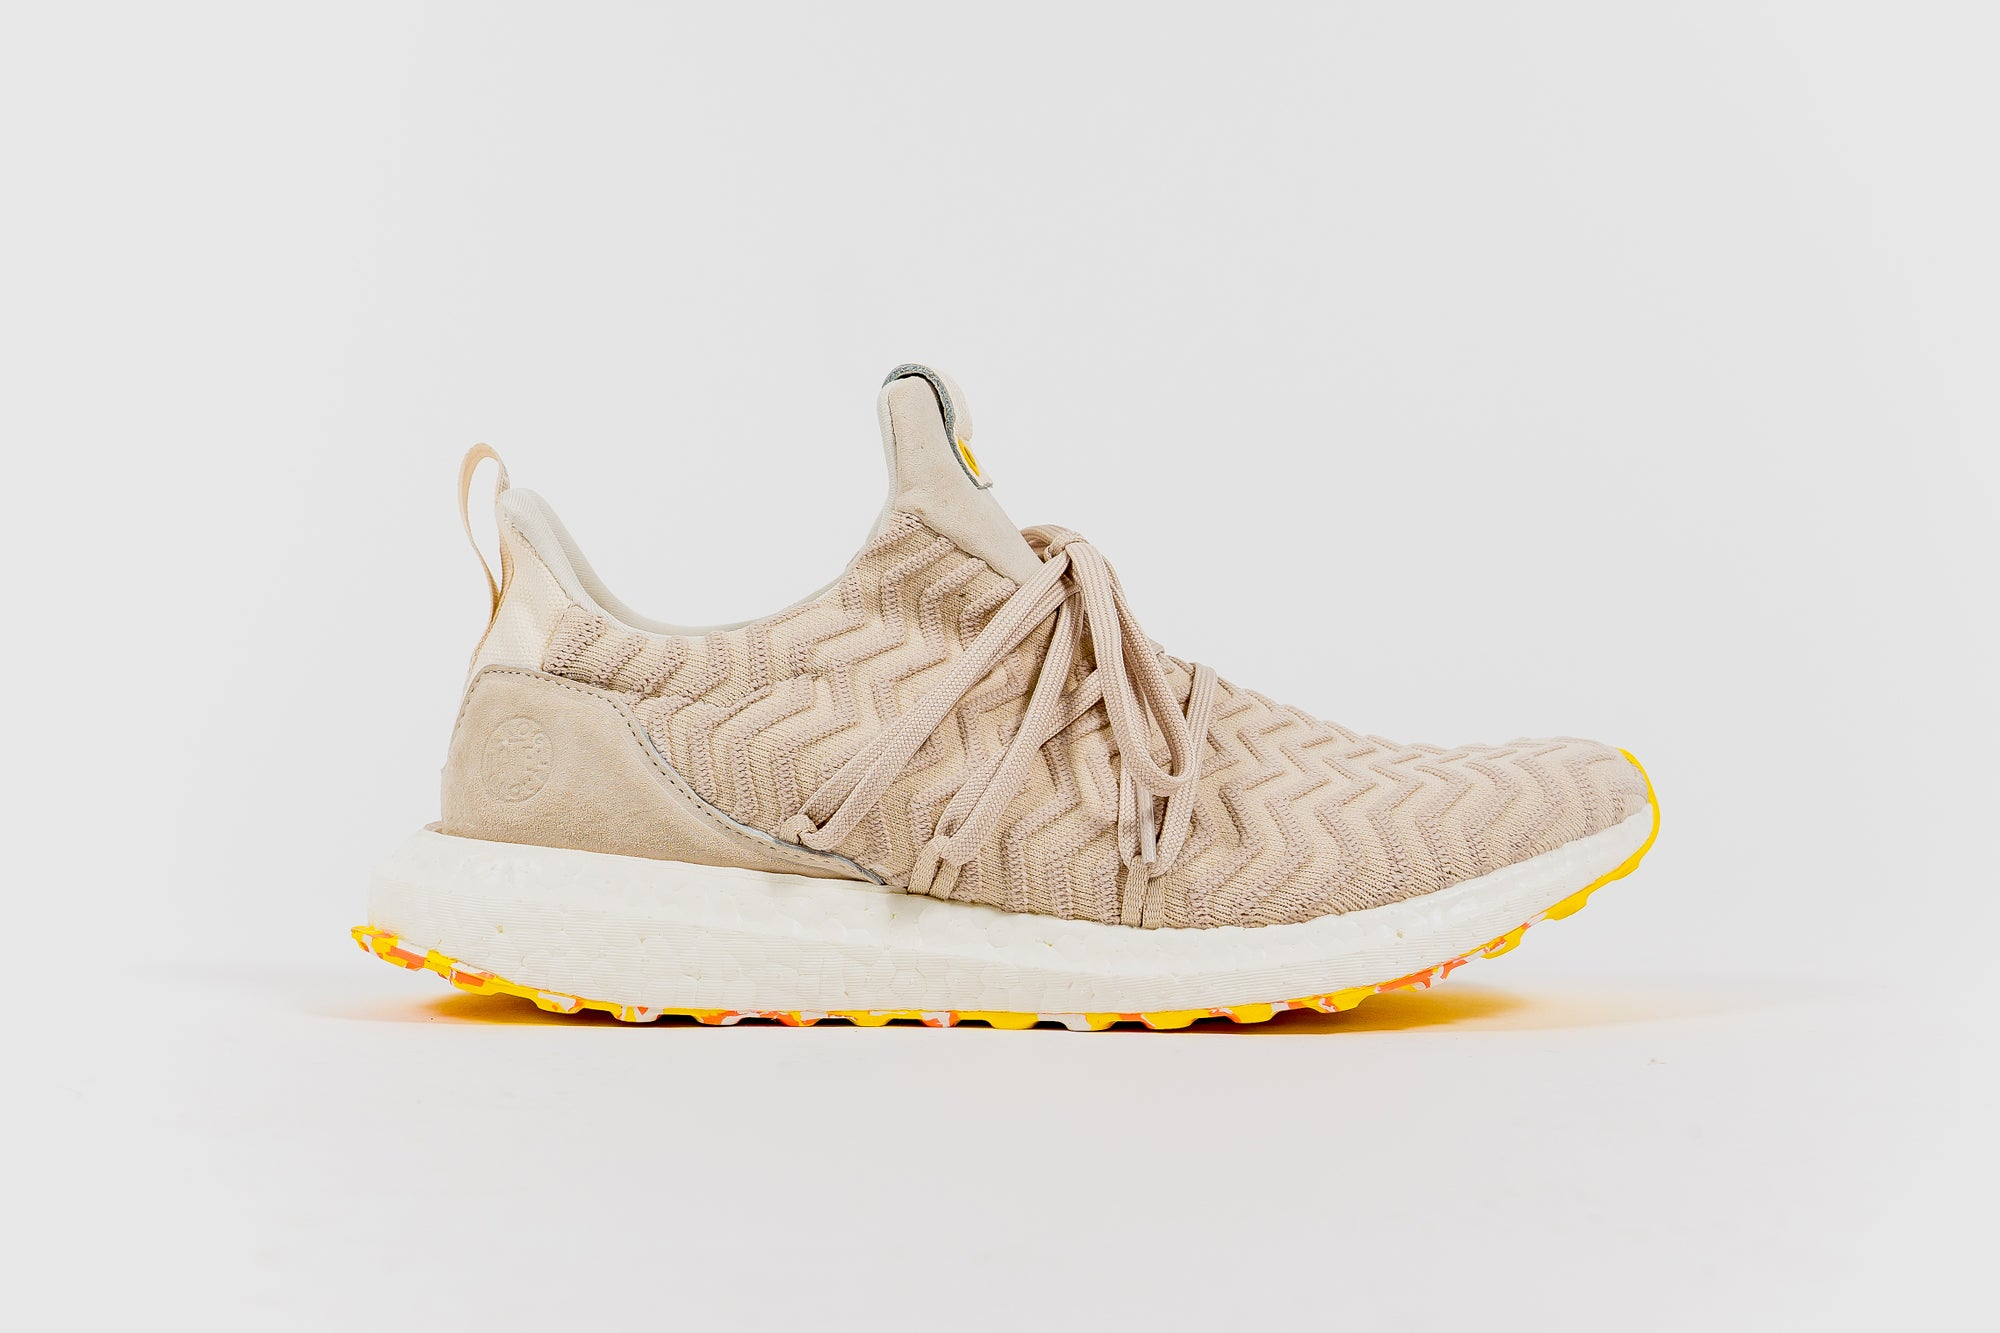 new concept 81014 acb7a ADIDAS ULTRA BOOST A KIND OF GUISE – PACKER SHOES